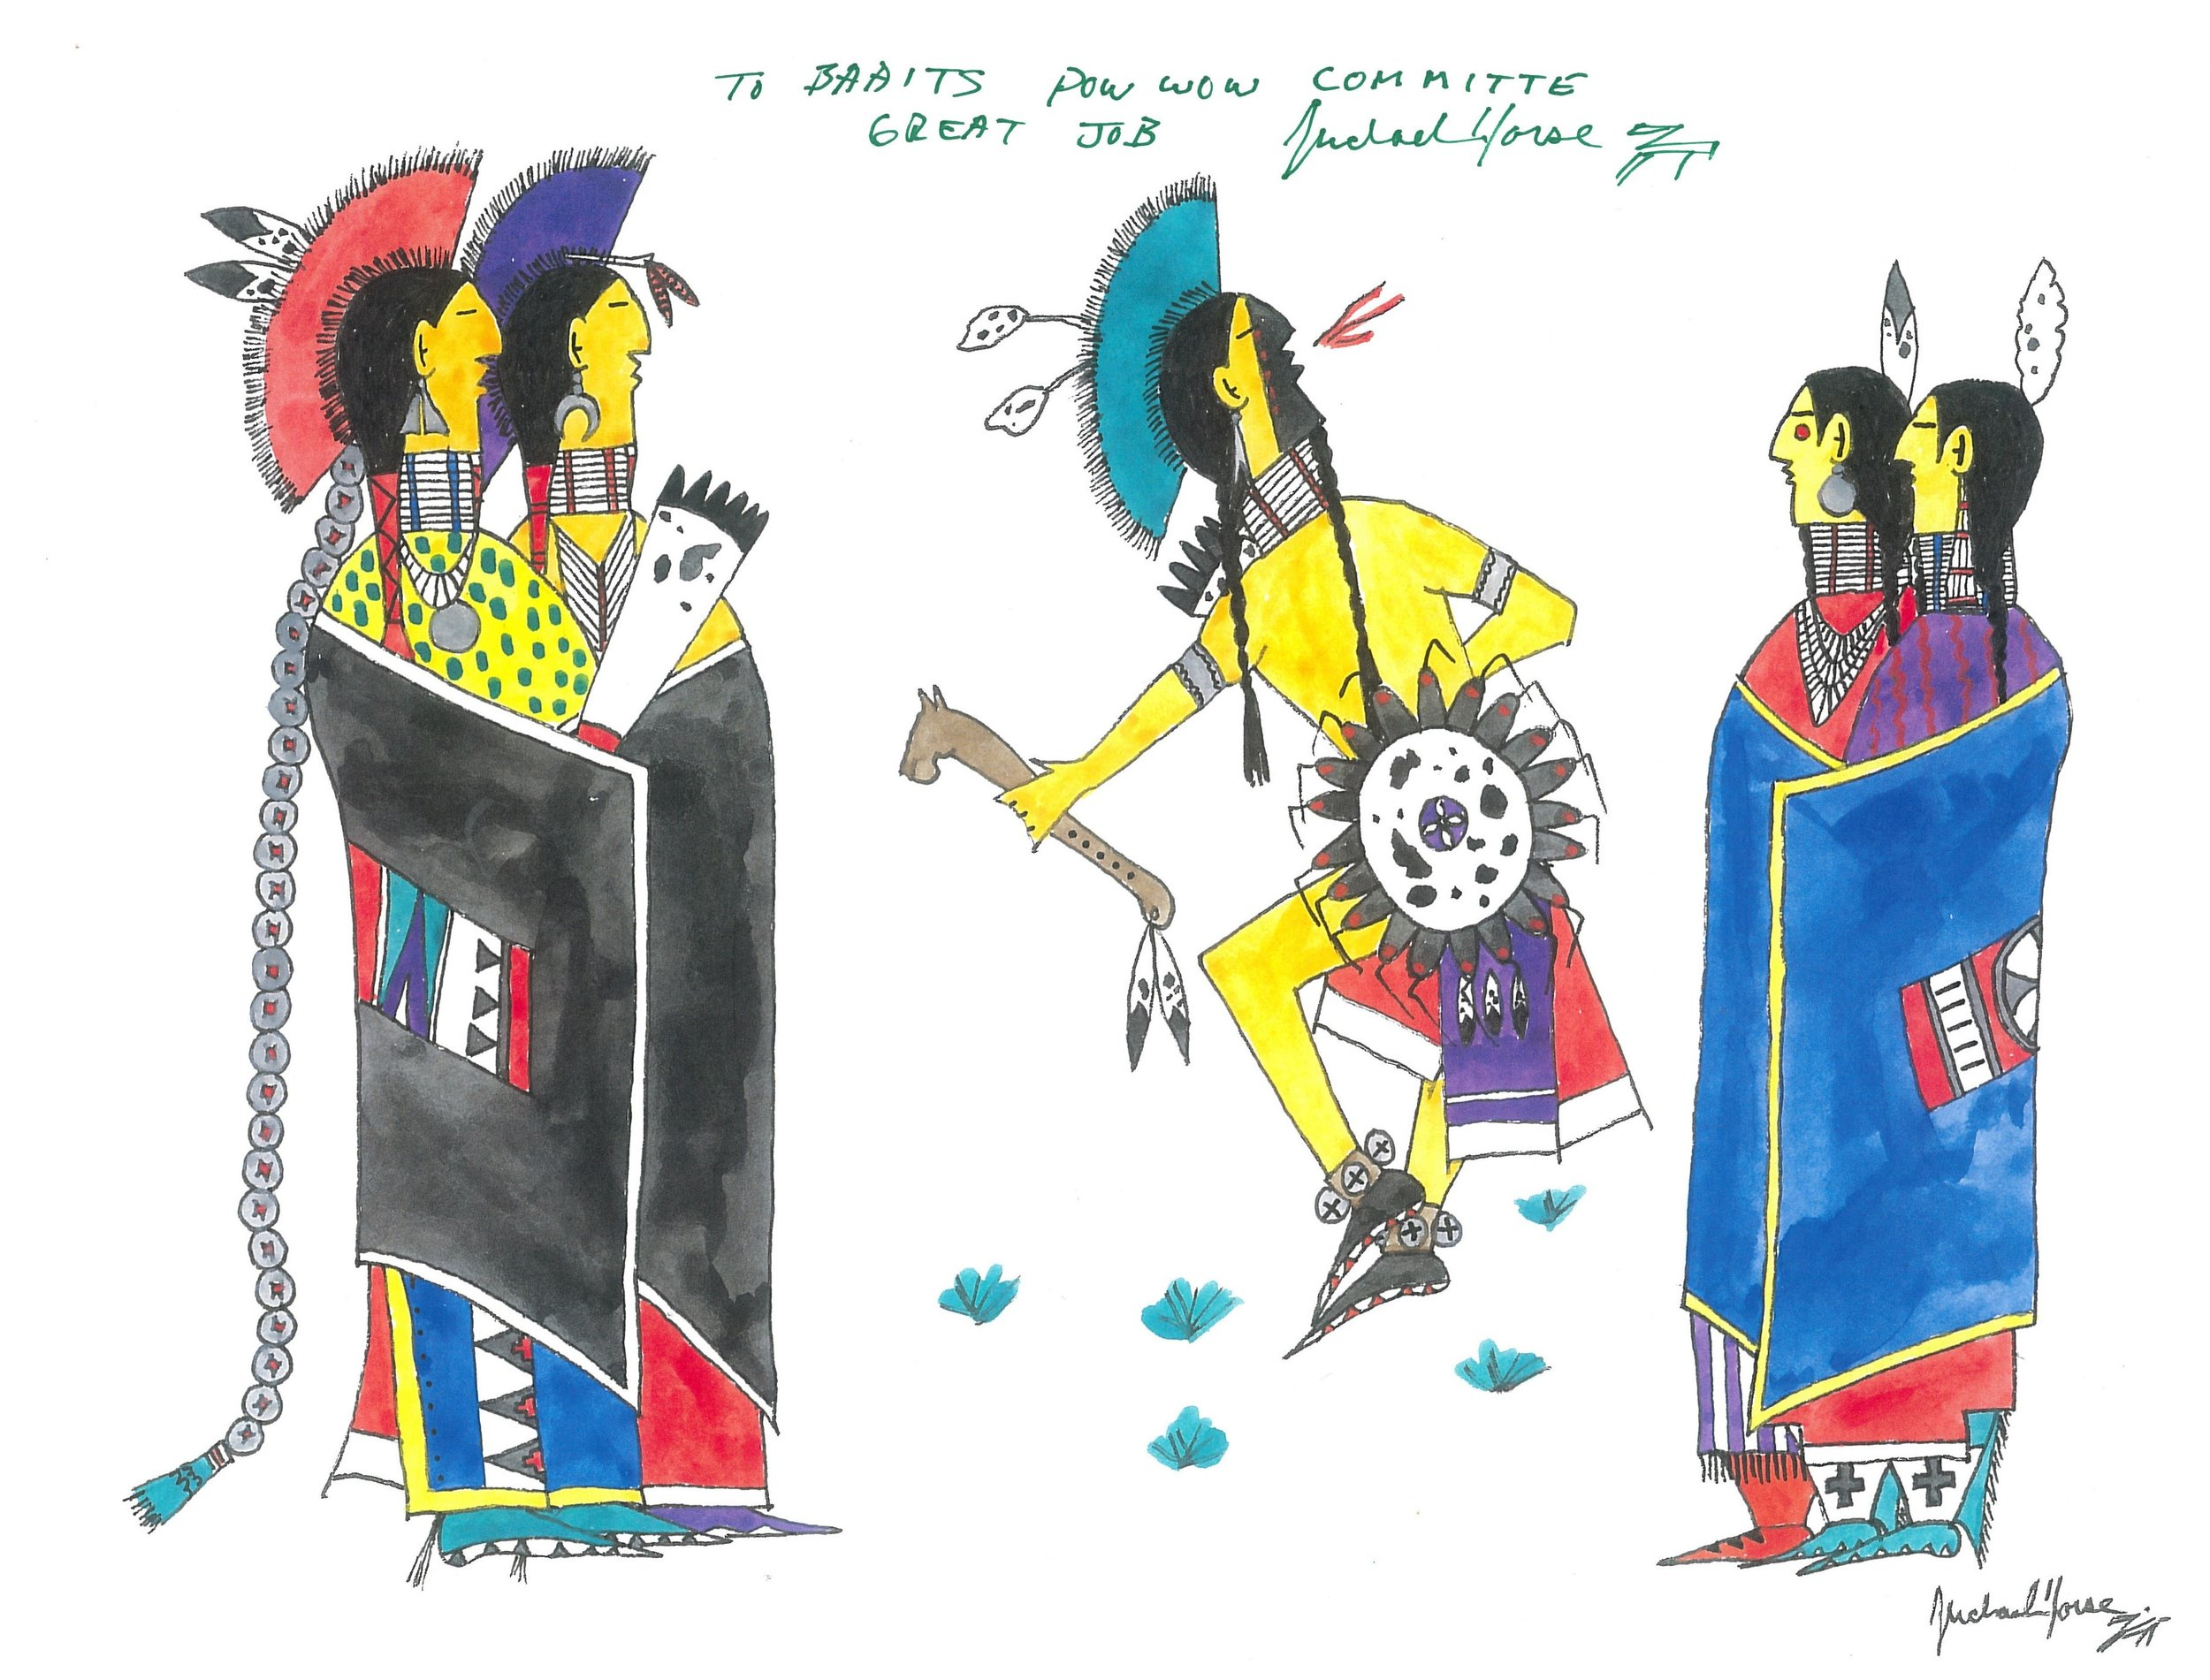 Michael Horse, Artwork for BAAITS's First Annual Two-Spirit Powwow (2012), used with permission.